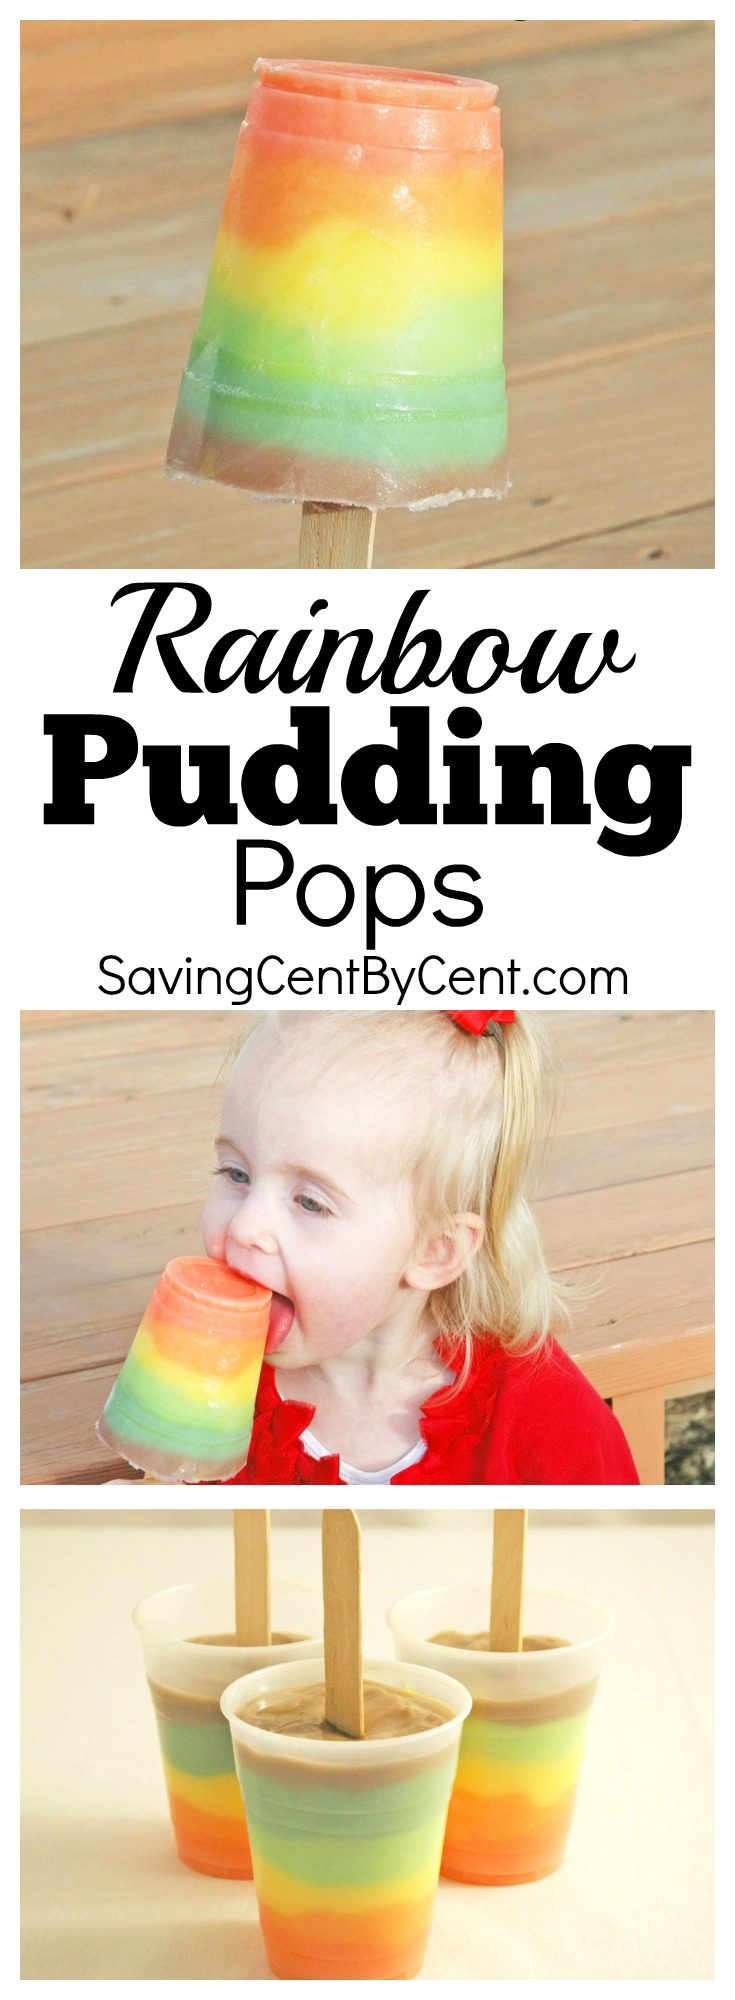 rainbow pudding pops summer dessert activity